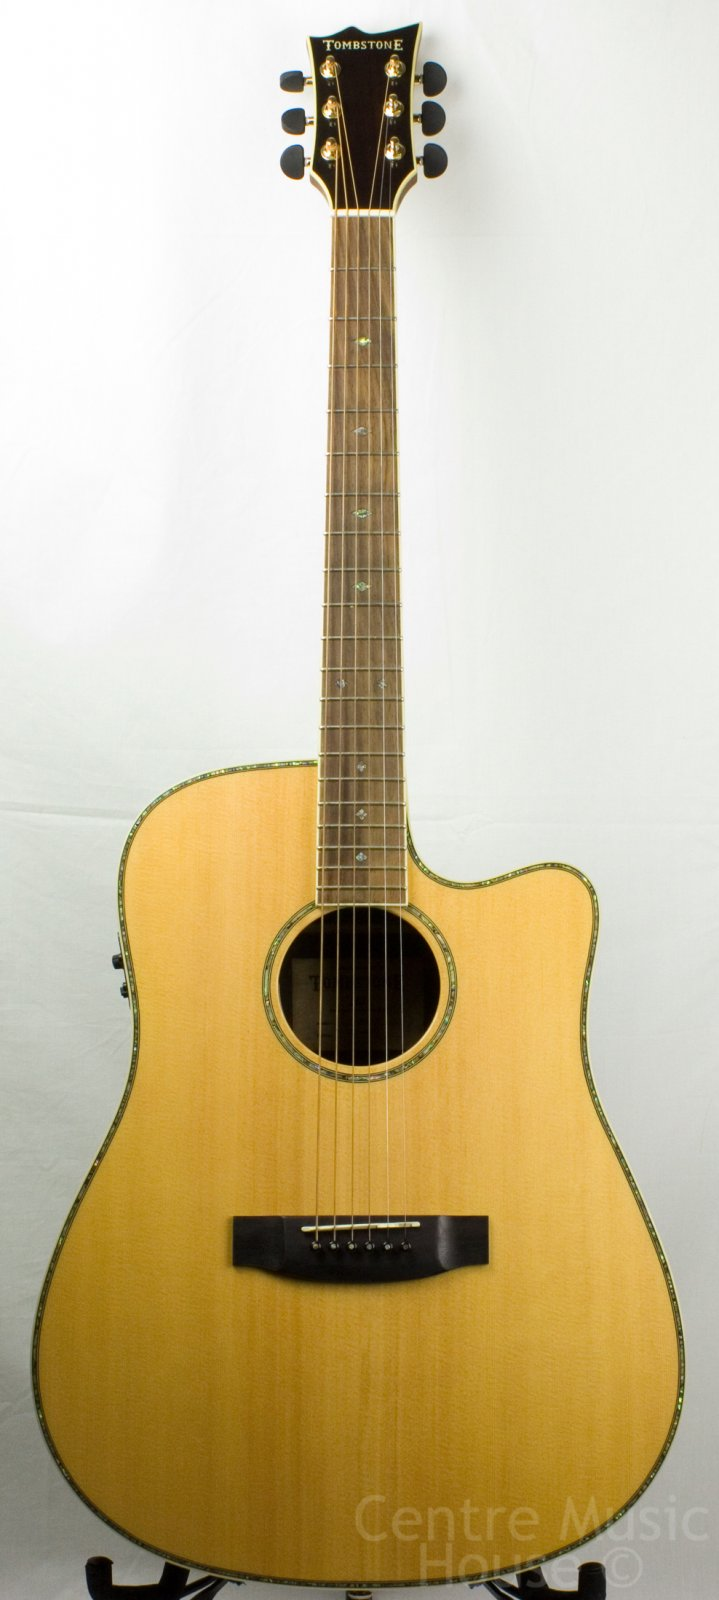 Tombstone by LTD D-430E NAT Acoustic-Electric Guitar, Natural